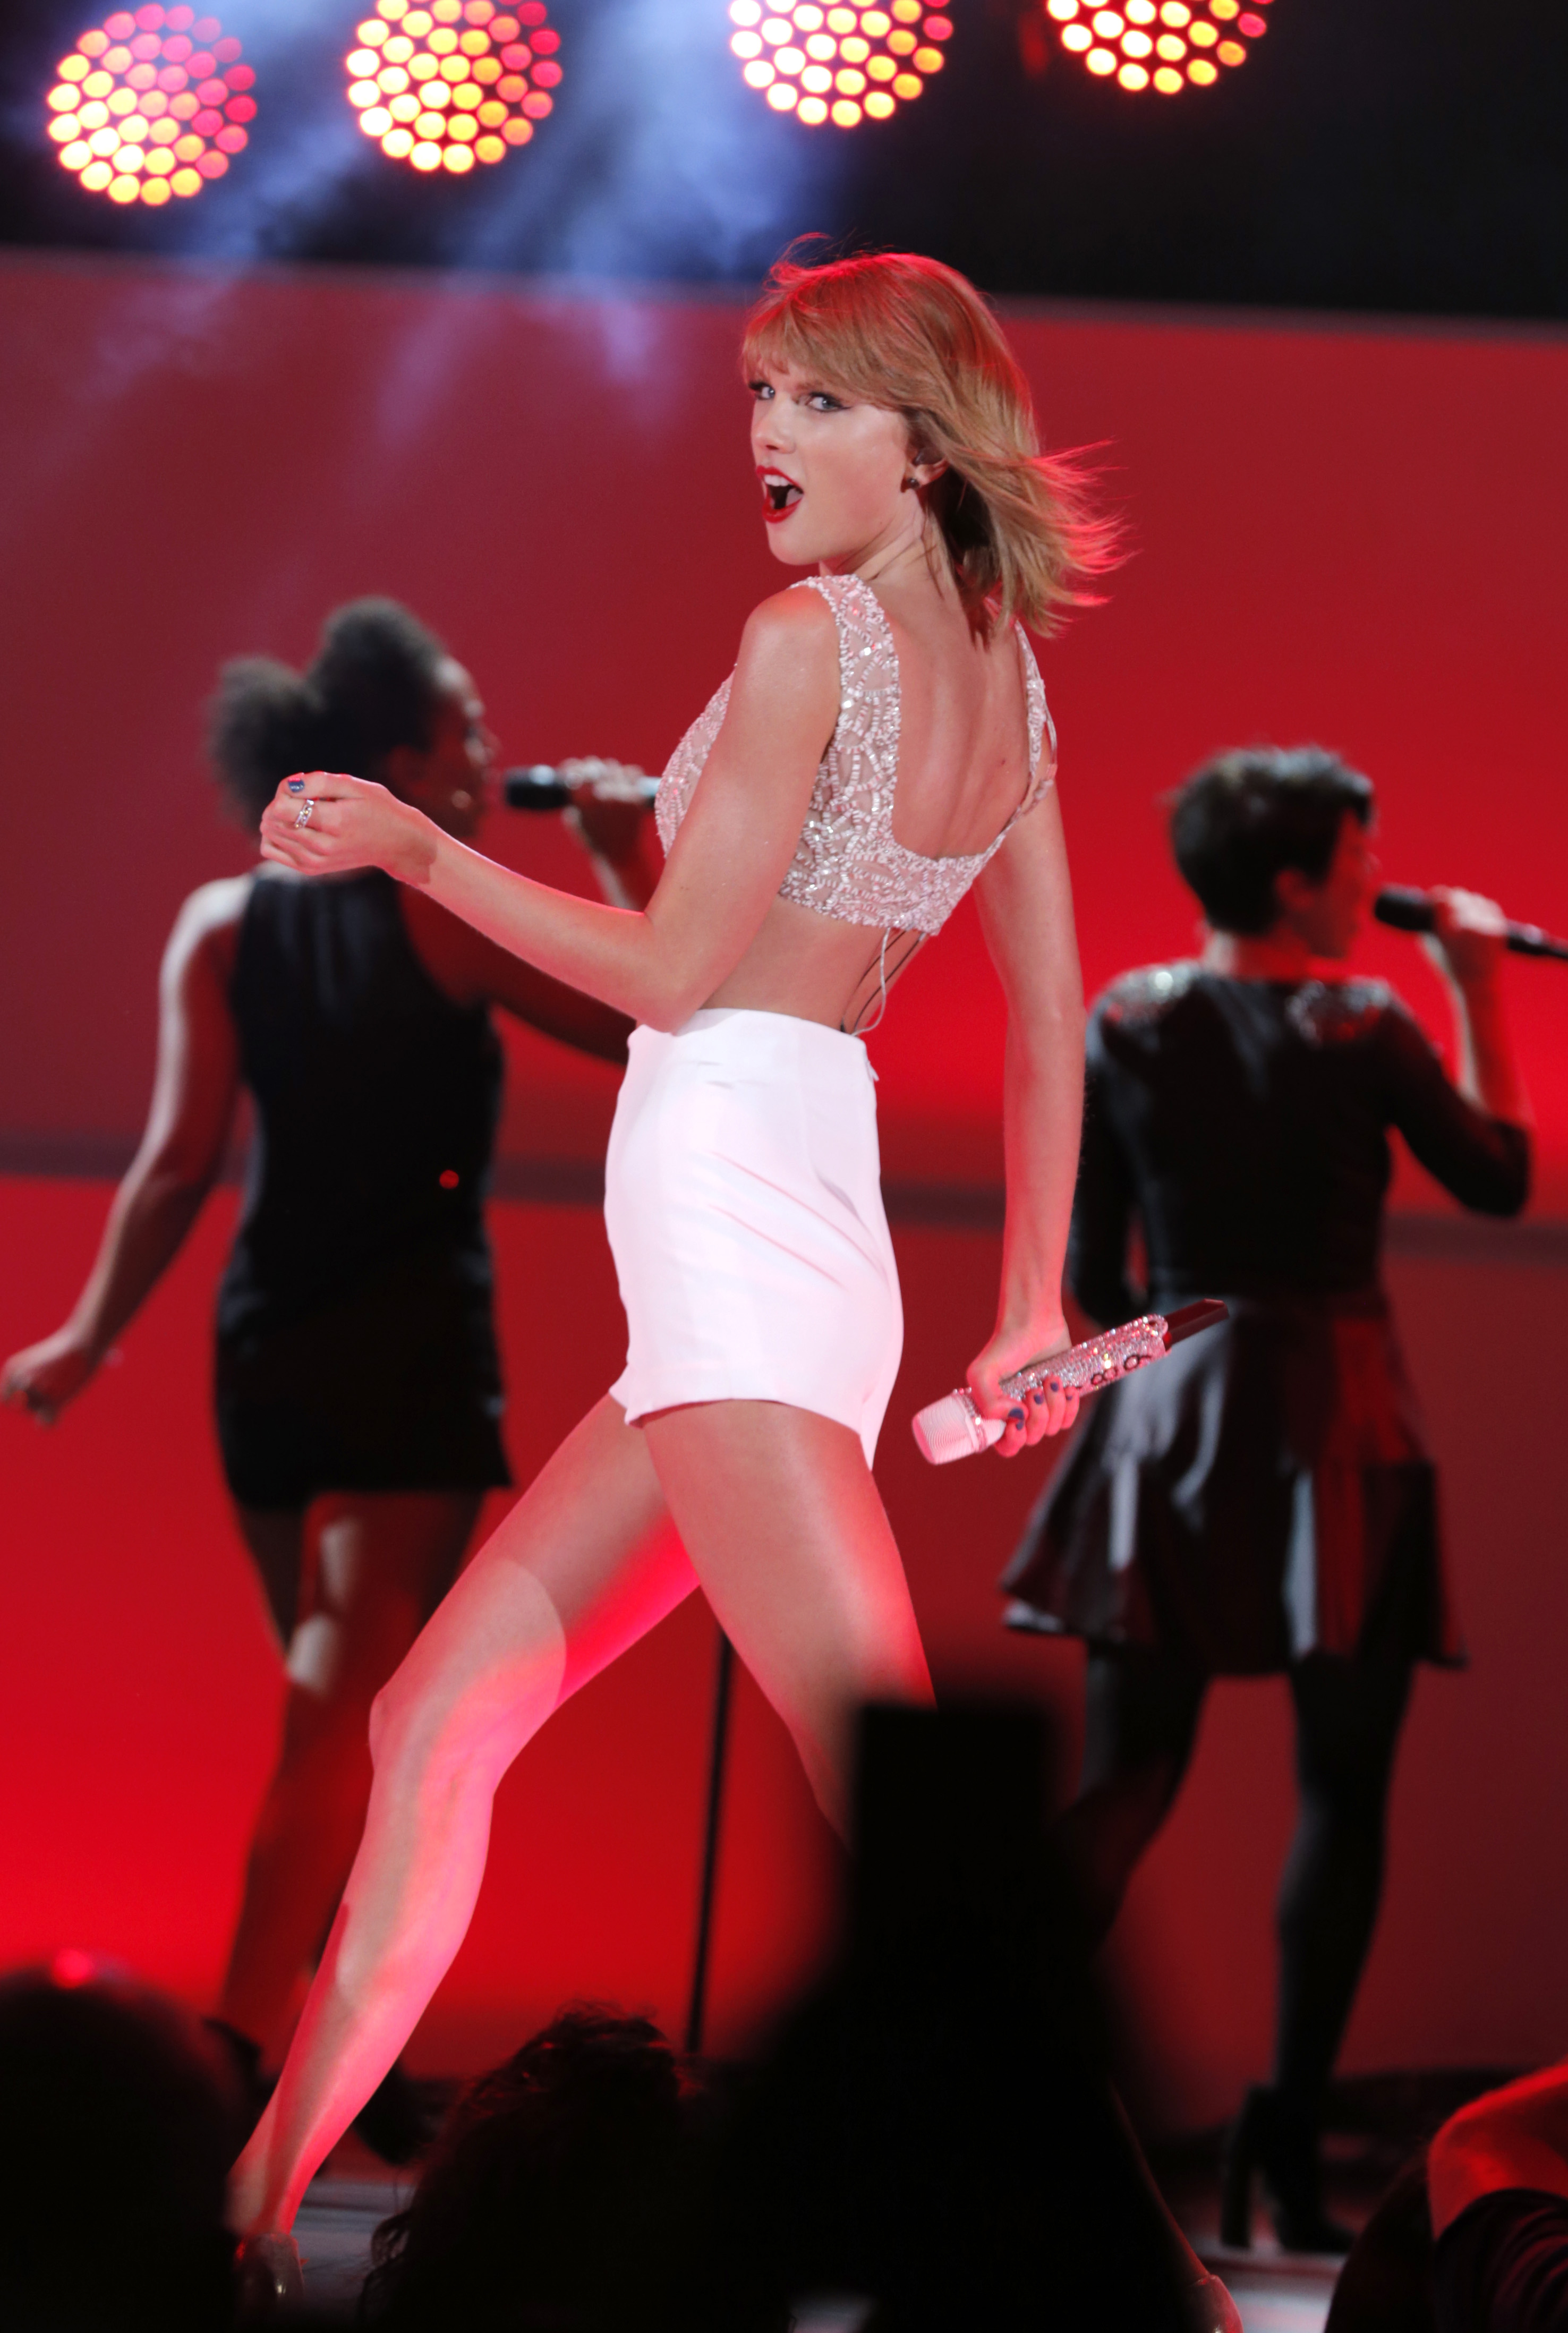 Taylor Swift performs on stage at CBS Radio's second annual We Can Survive concert at the Hollywood Bowl on Friday, Oct. 24, 2014, in Los Angeles.